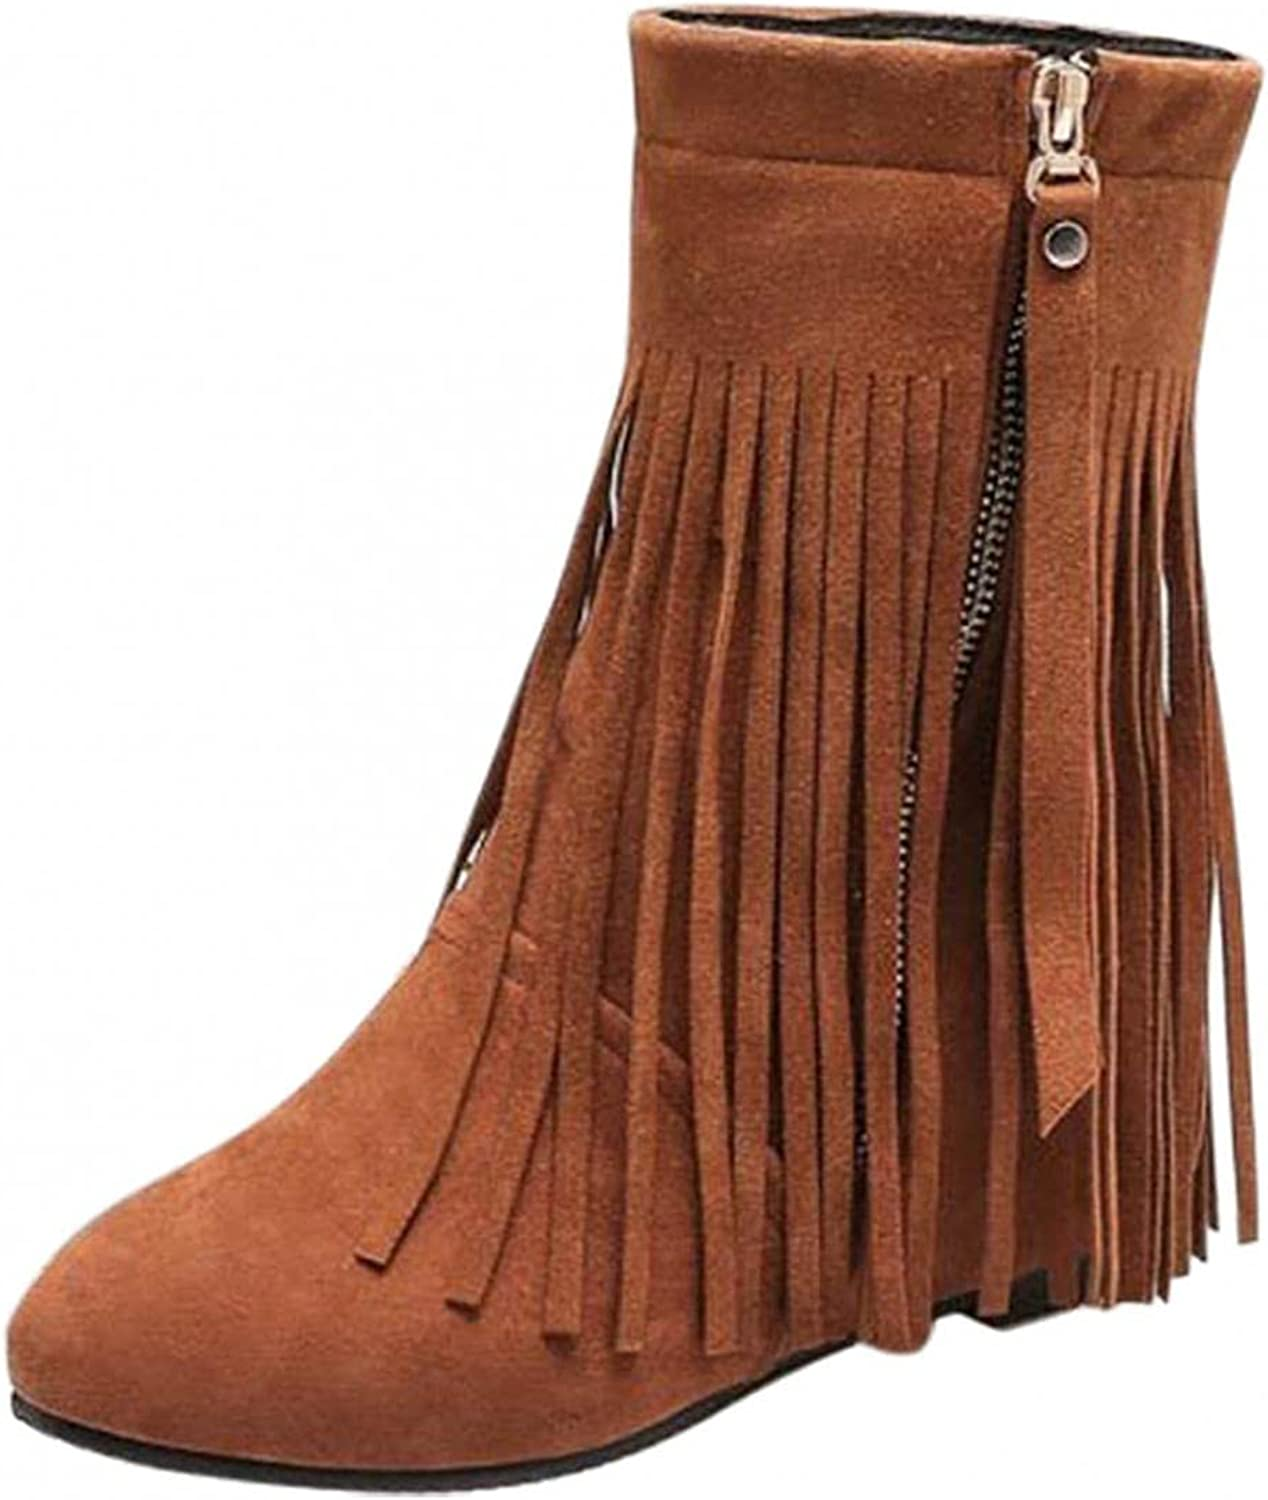 UOCUFY Platform outlet Max 84% OFF Boots for Women Round on Short Toe Zipper Slip